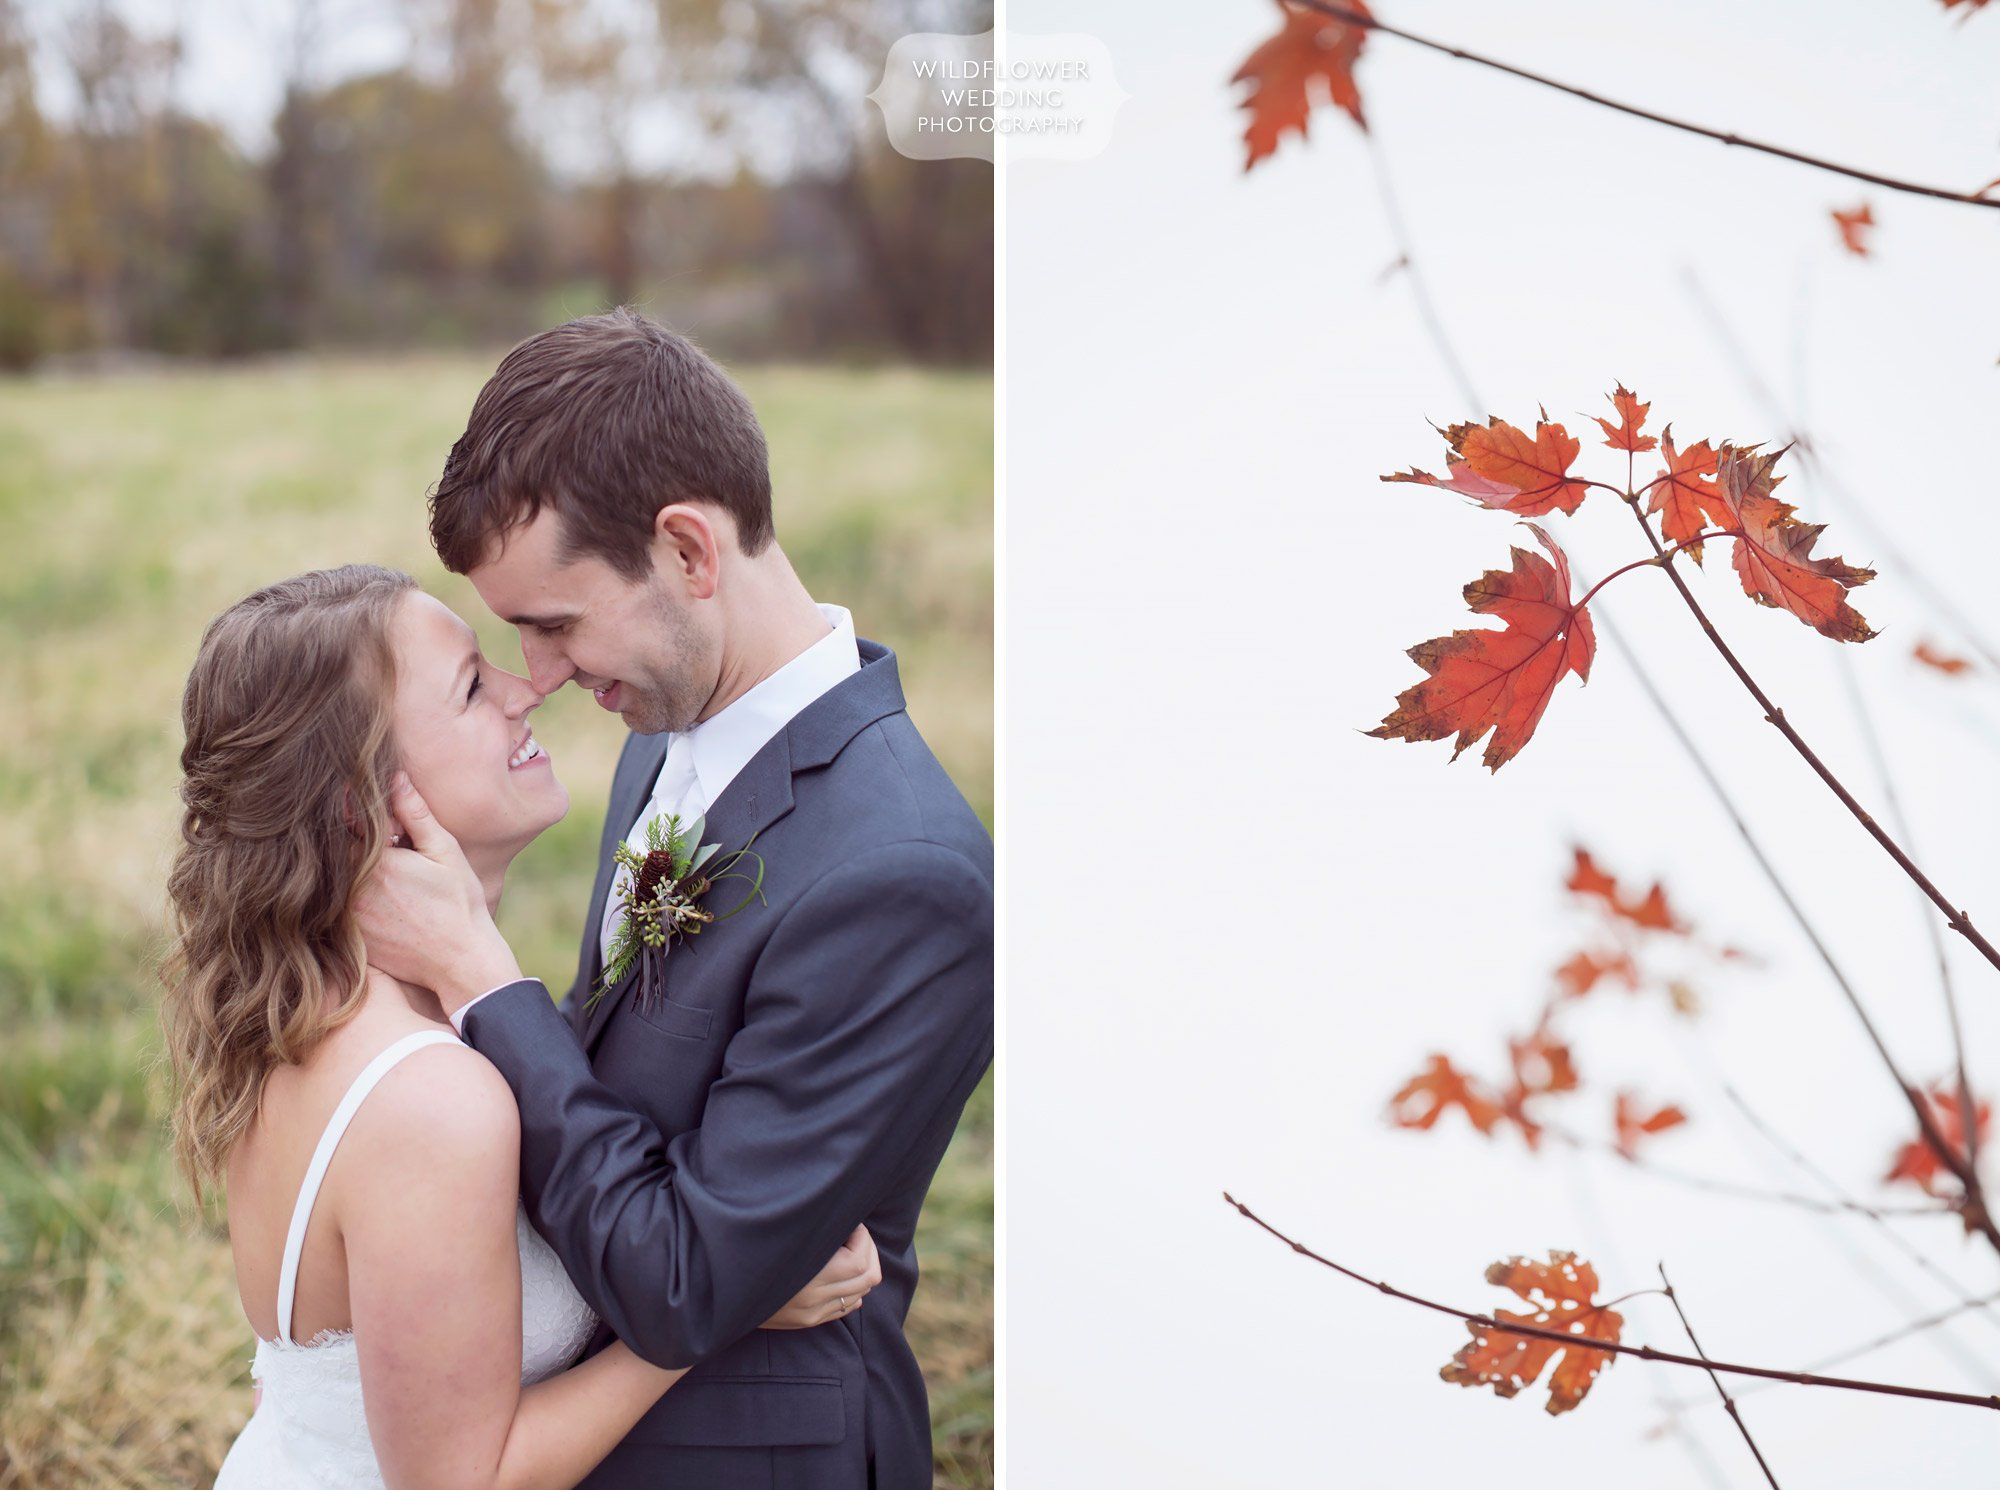 The bride and groom cuddle for their outdoor fall wedding at the Blue Bell Farm.